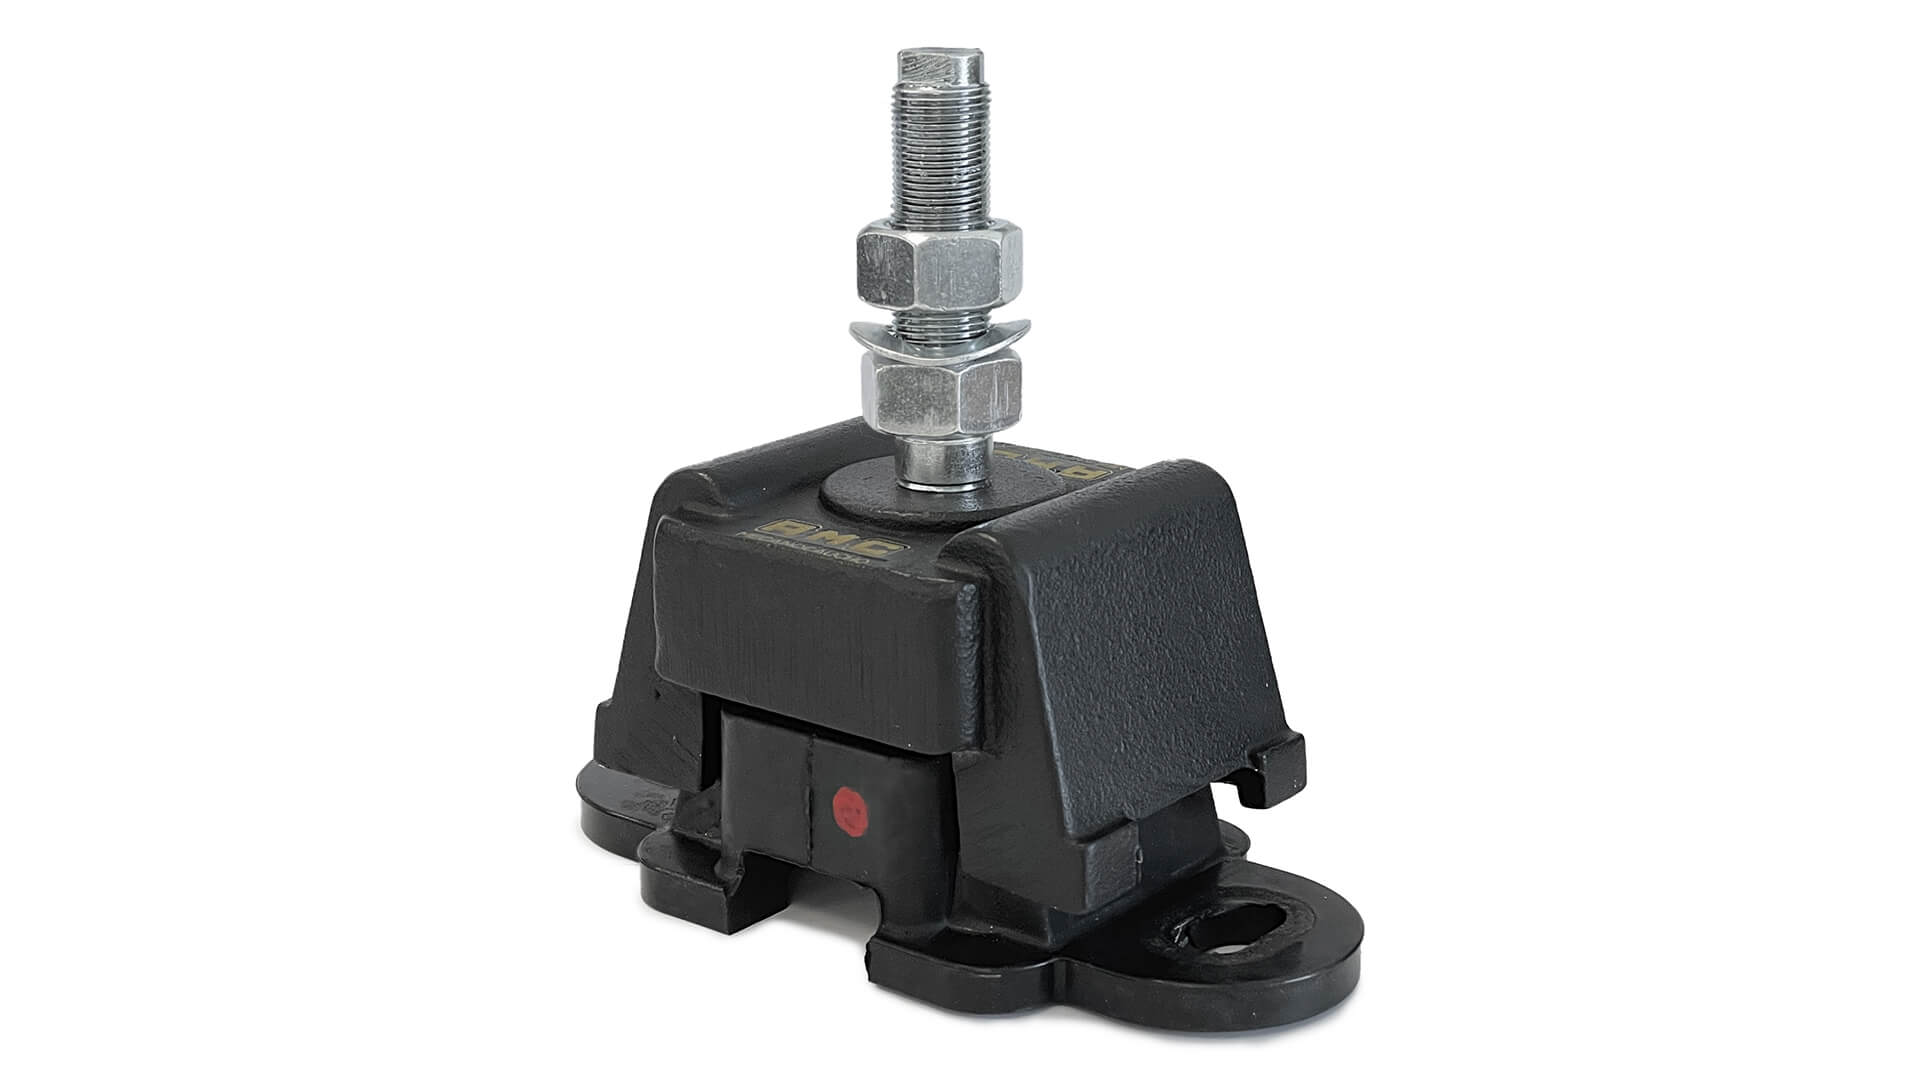 AMC-MECANOCAUCHO ADDS THE NEW MARINE XT ANTI VIBRATION MOUNTS TO THEIR RANGE